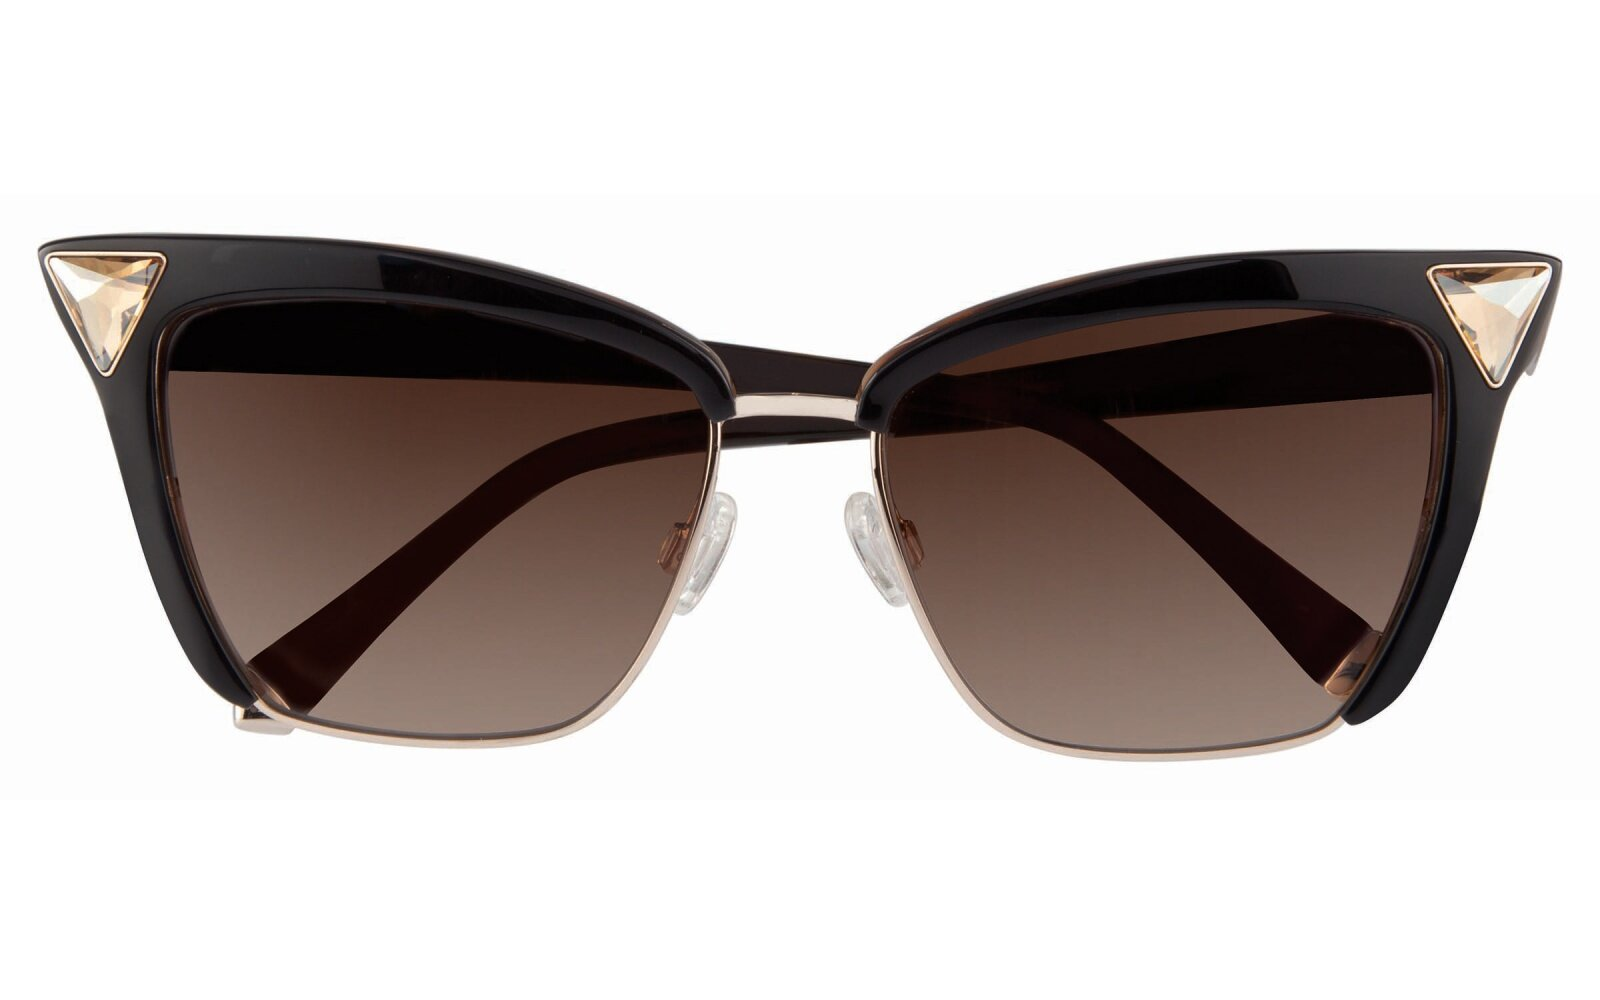 3340c1ce741 Stylist Kate Young s Sunglasses for Tura